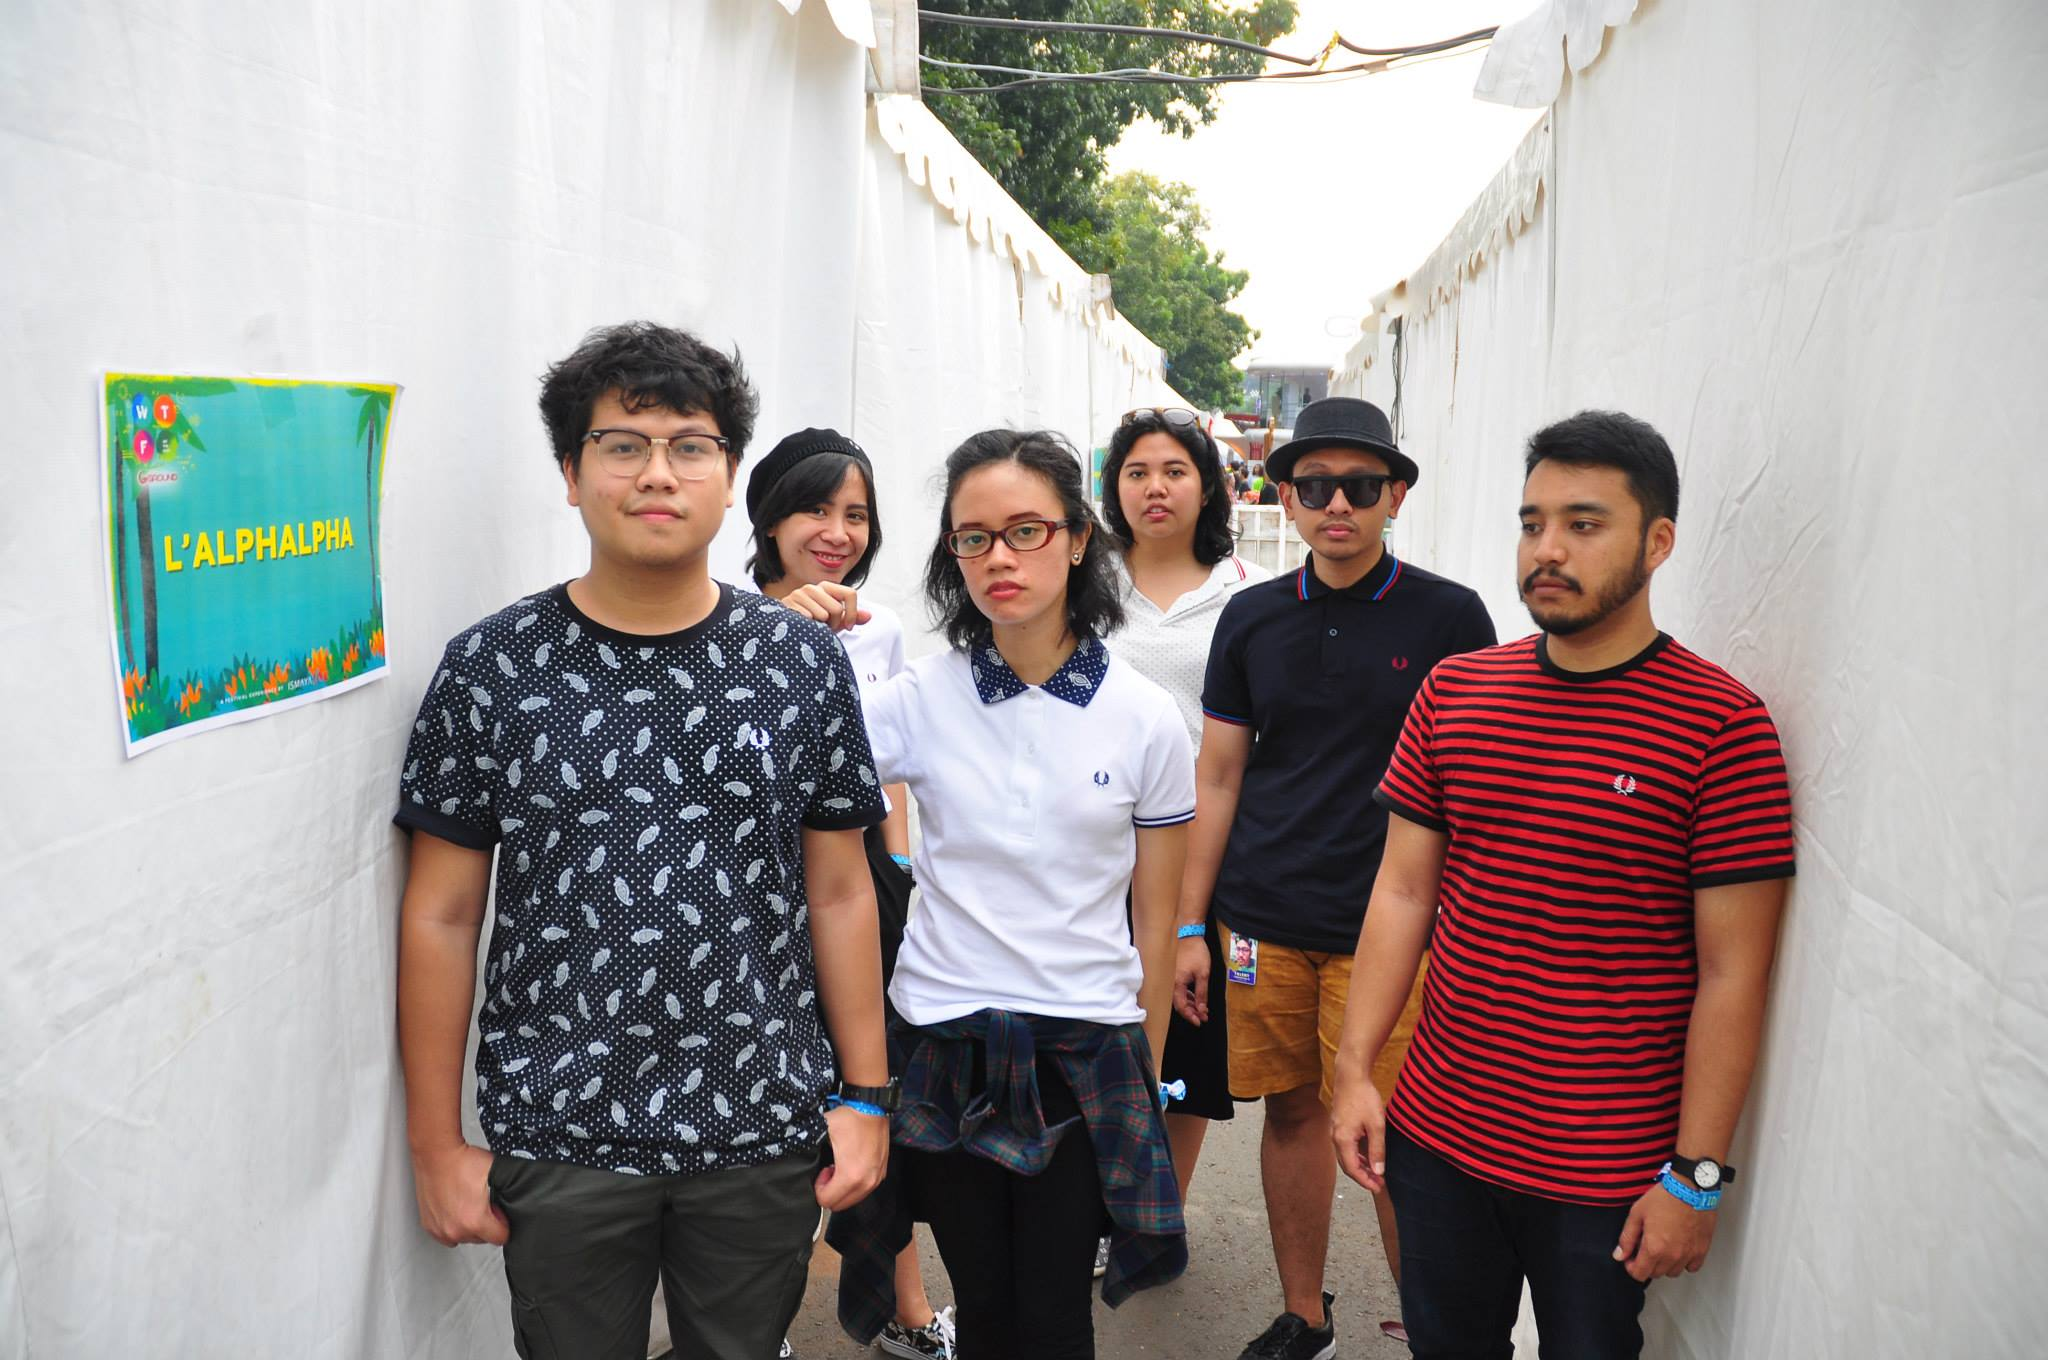 Post-rock band L'Alphalpha from Indonesia release live videos - Unite Asia